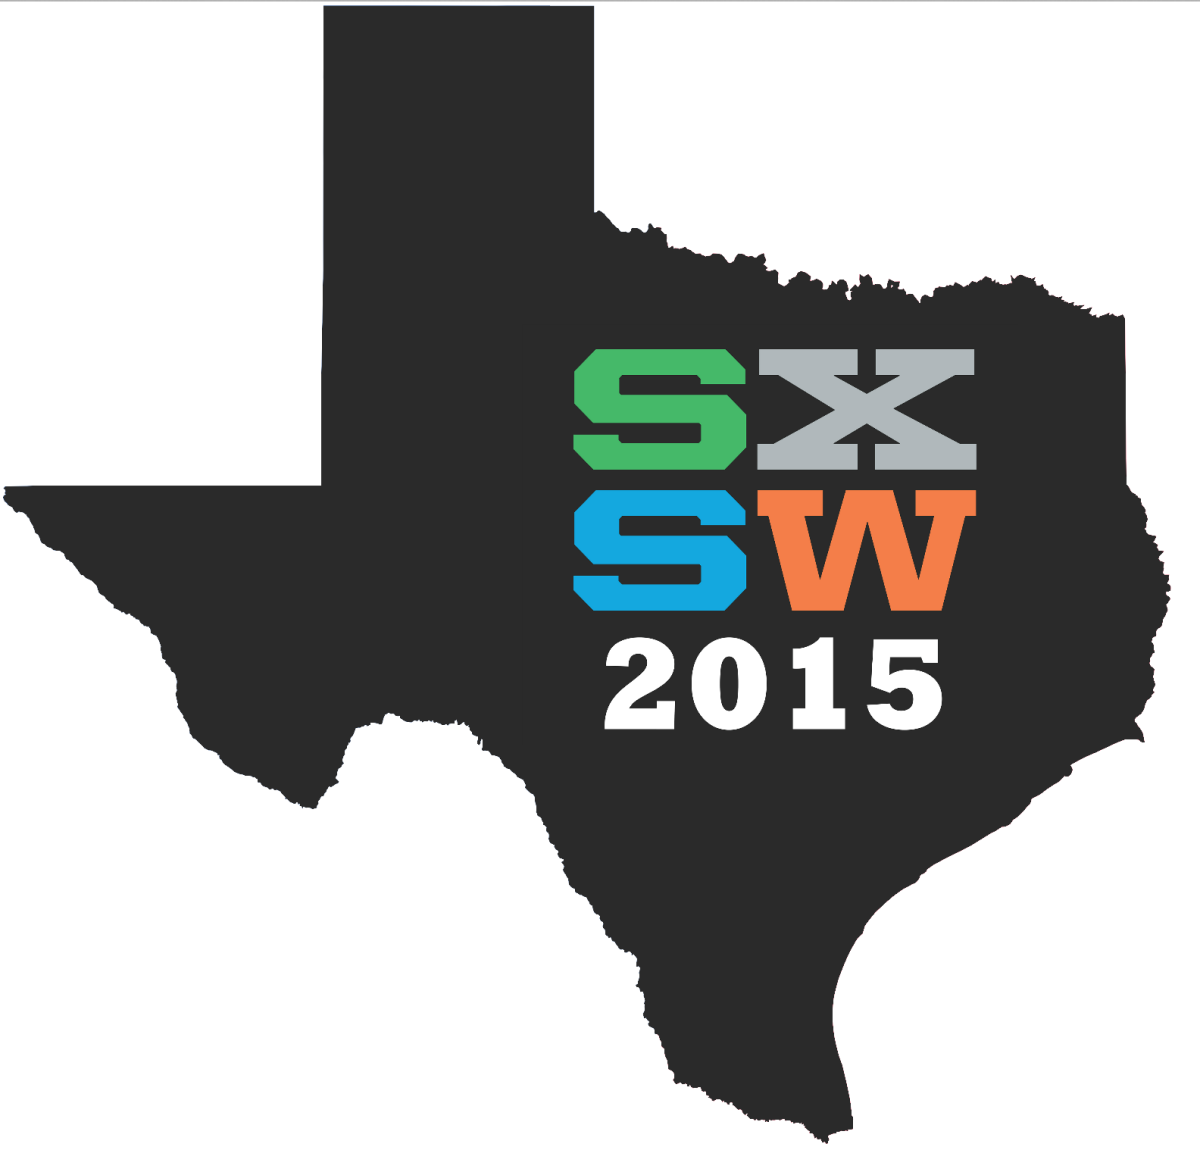 South by Southwest 2015 in Austin, Texas.